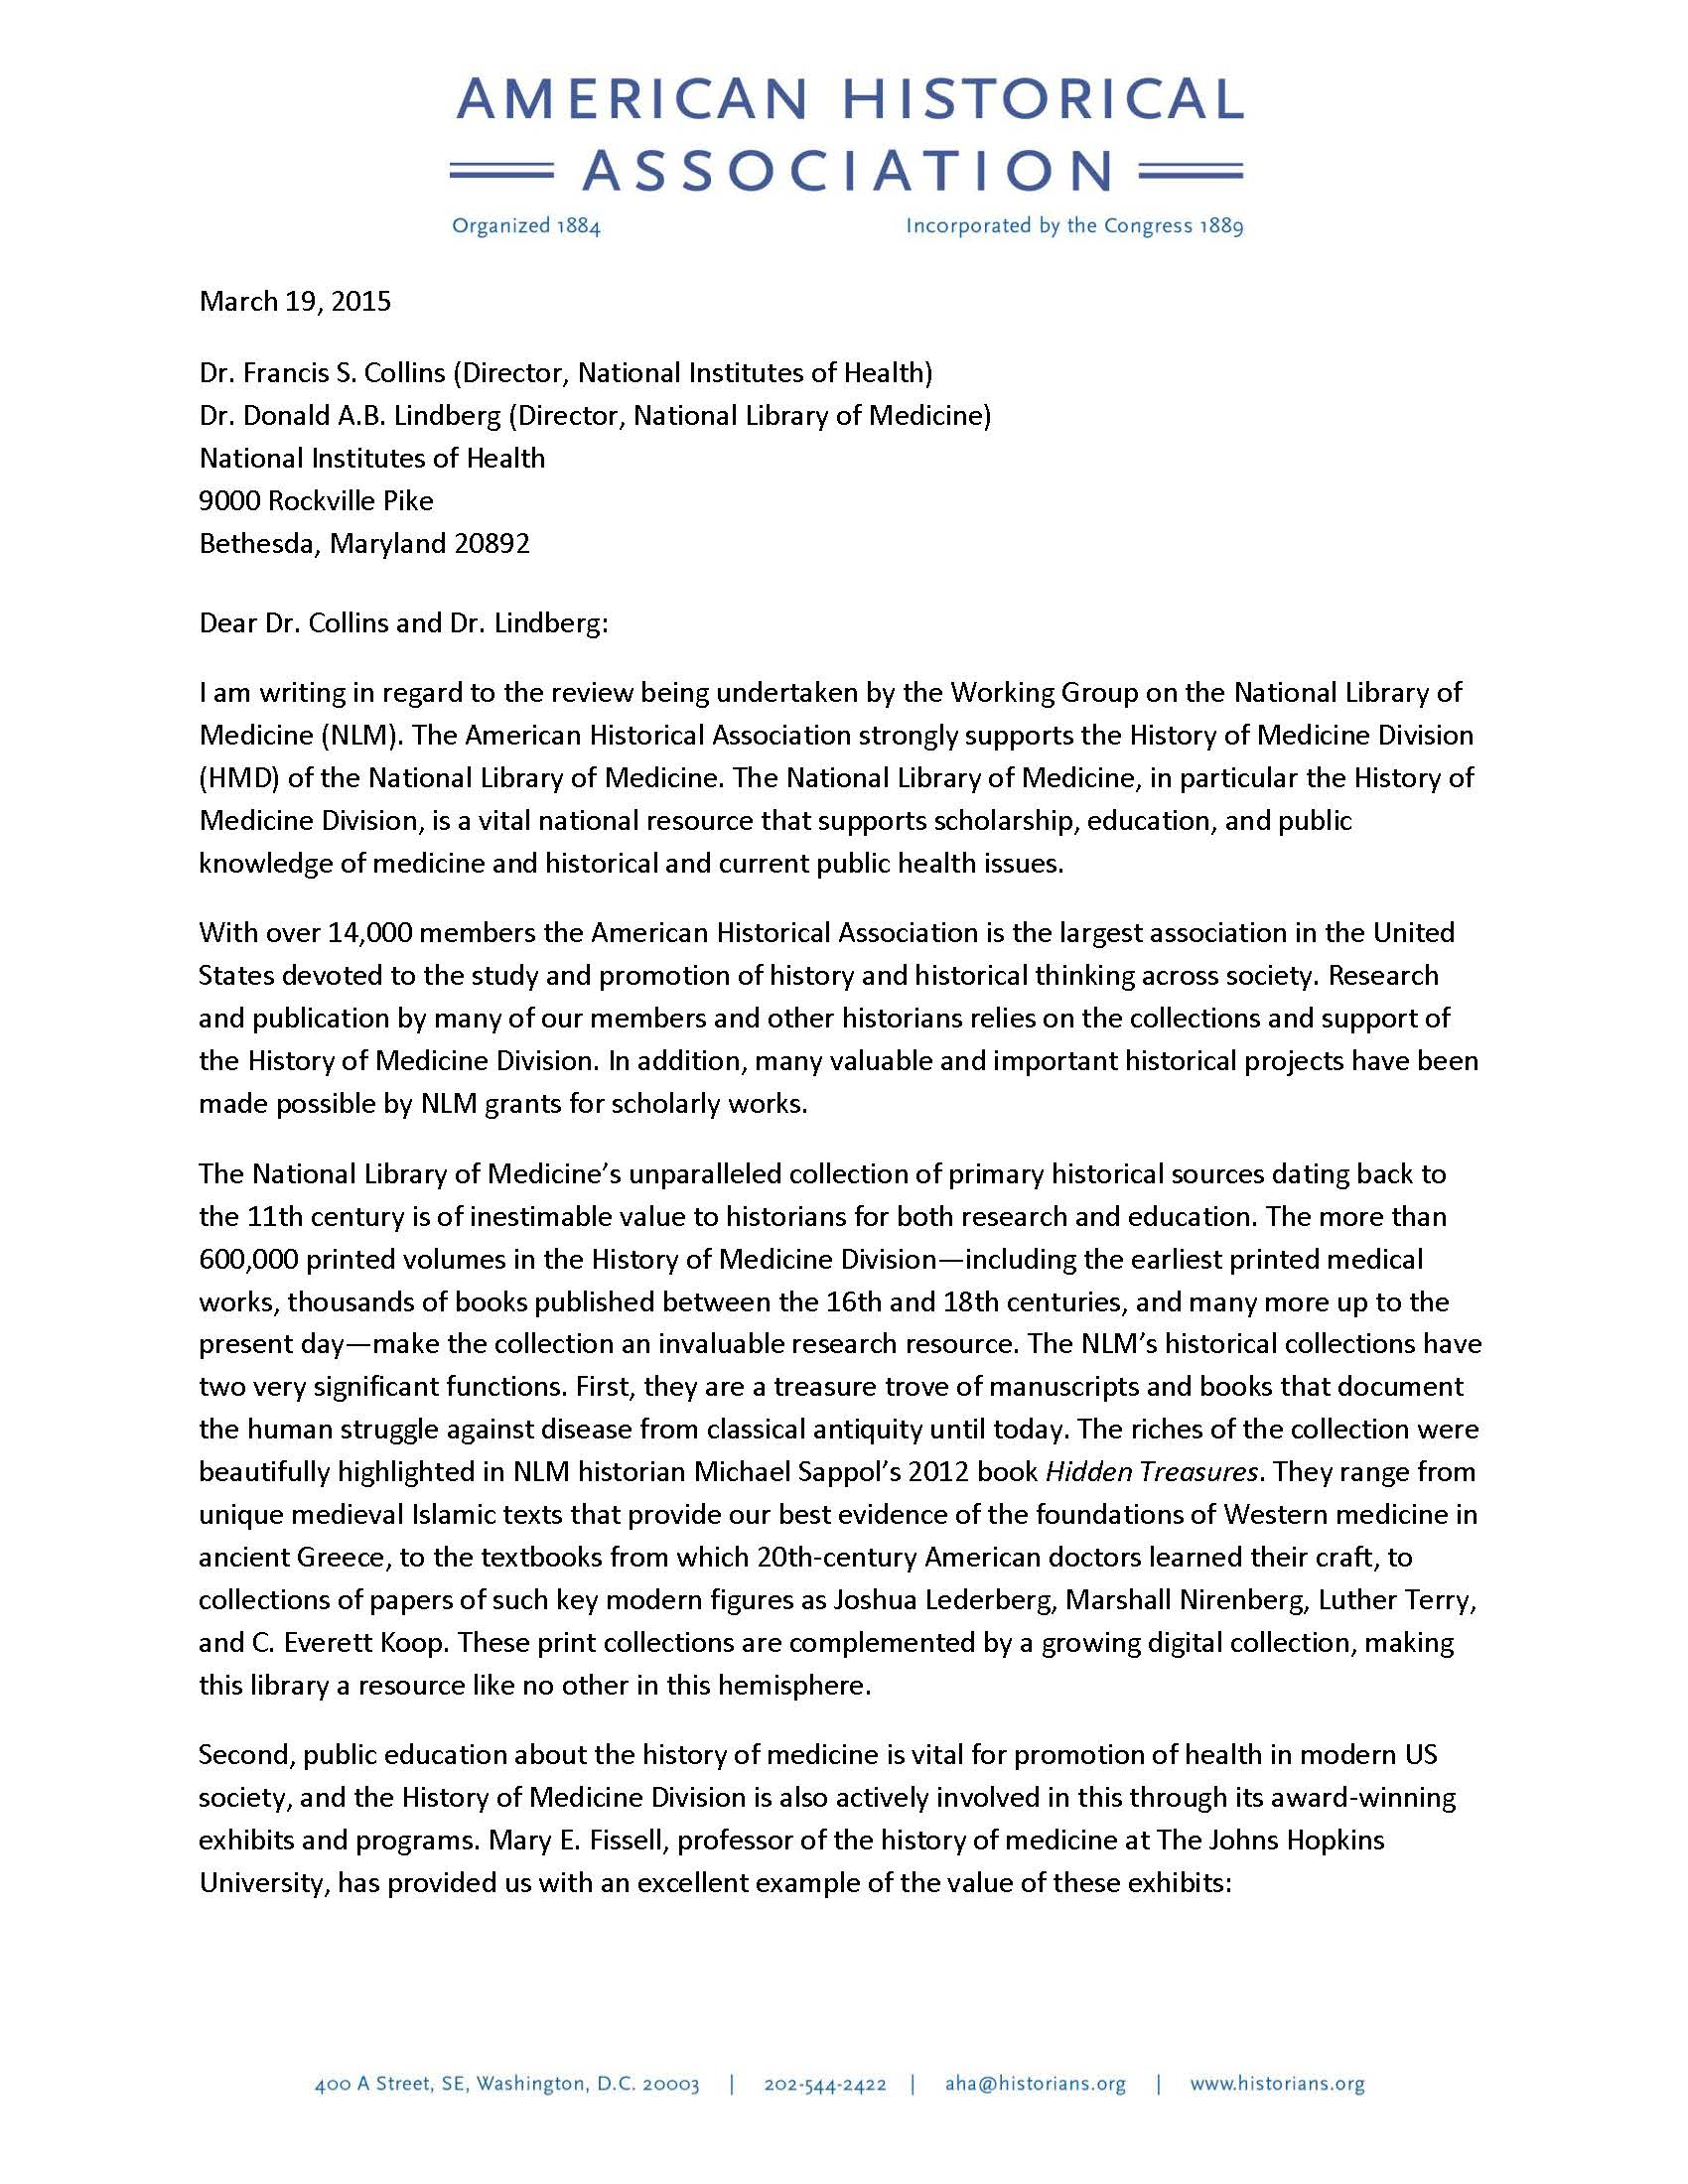 AHA Issues Letter of Support for the History of Medicine